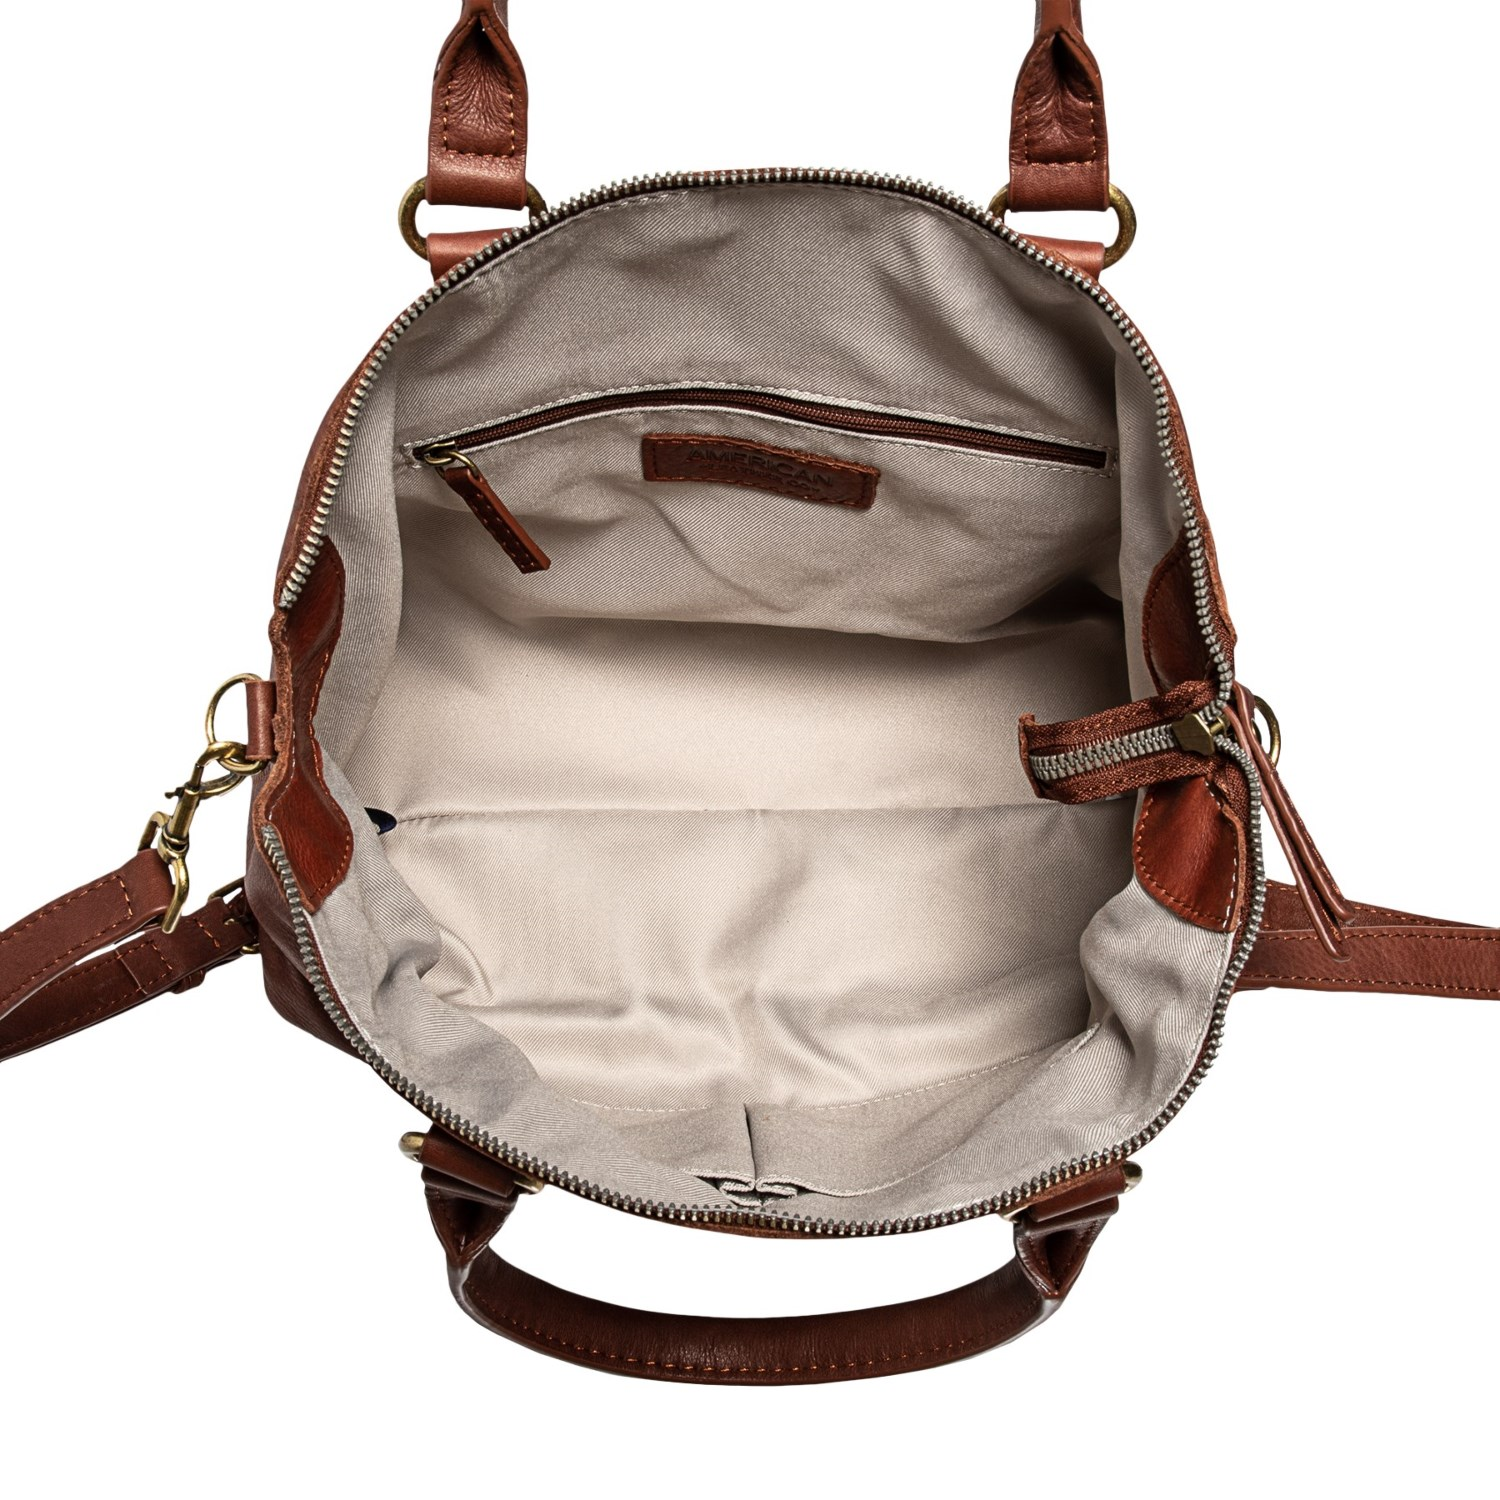 869e173bb9f80 American Leather Co. Carrie Dome Satchel (For Women) - Save 54%